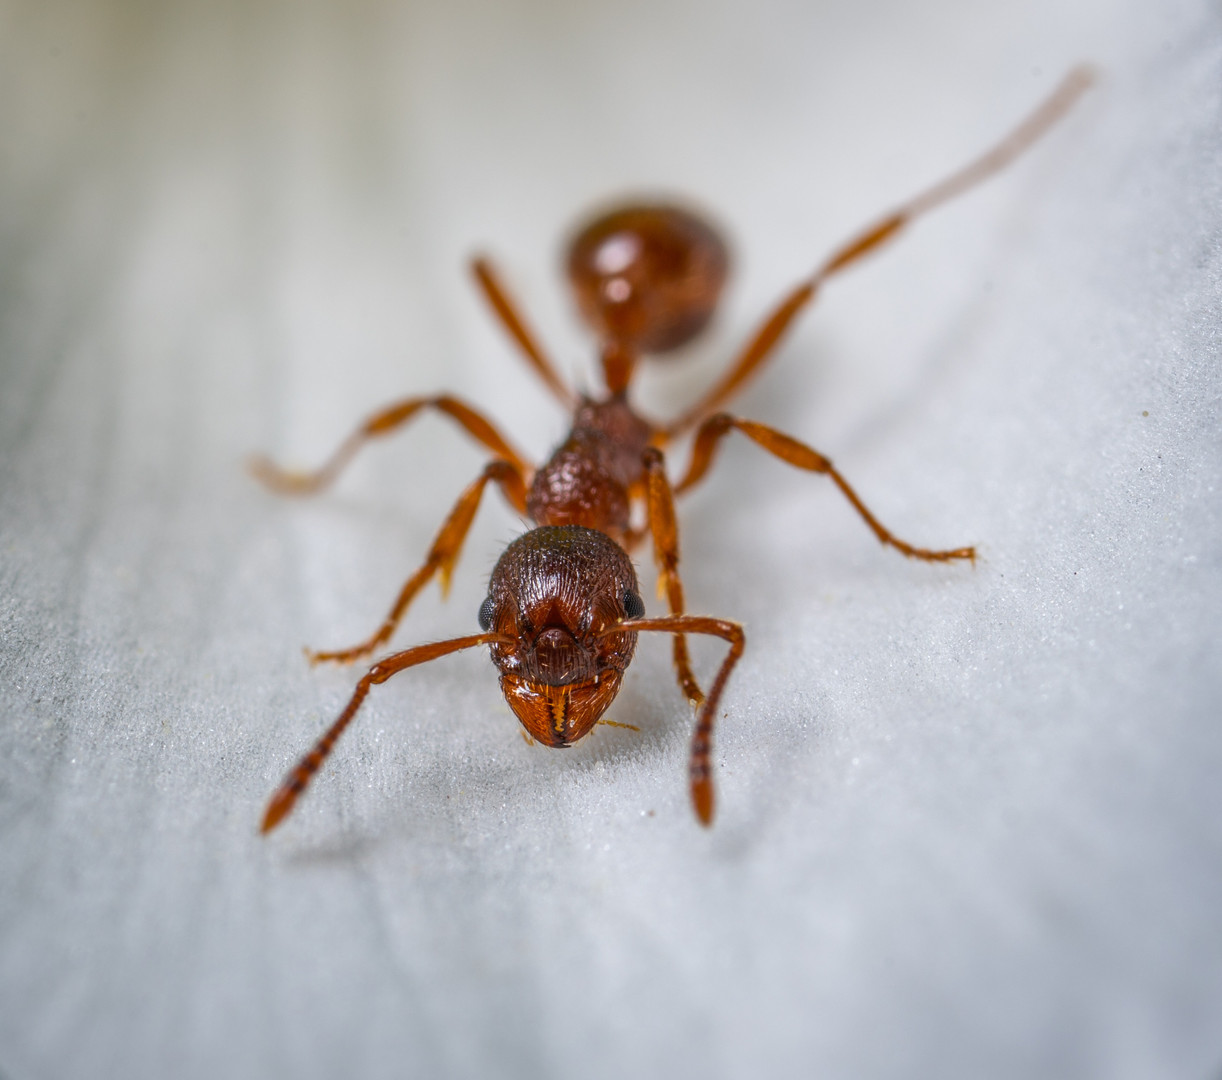 red-ant-macro-photography-1086882.jpg